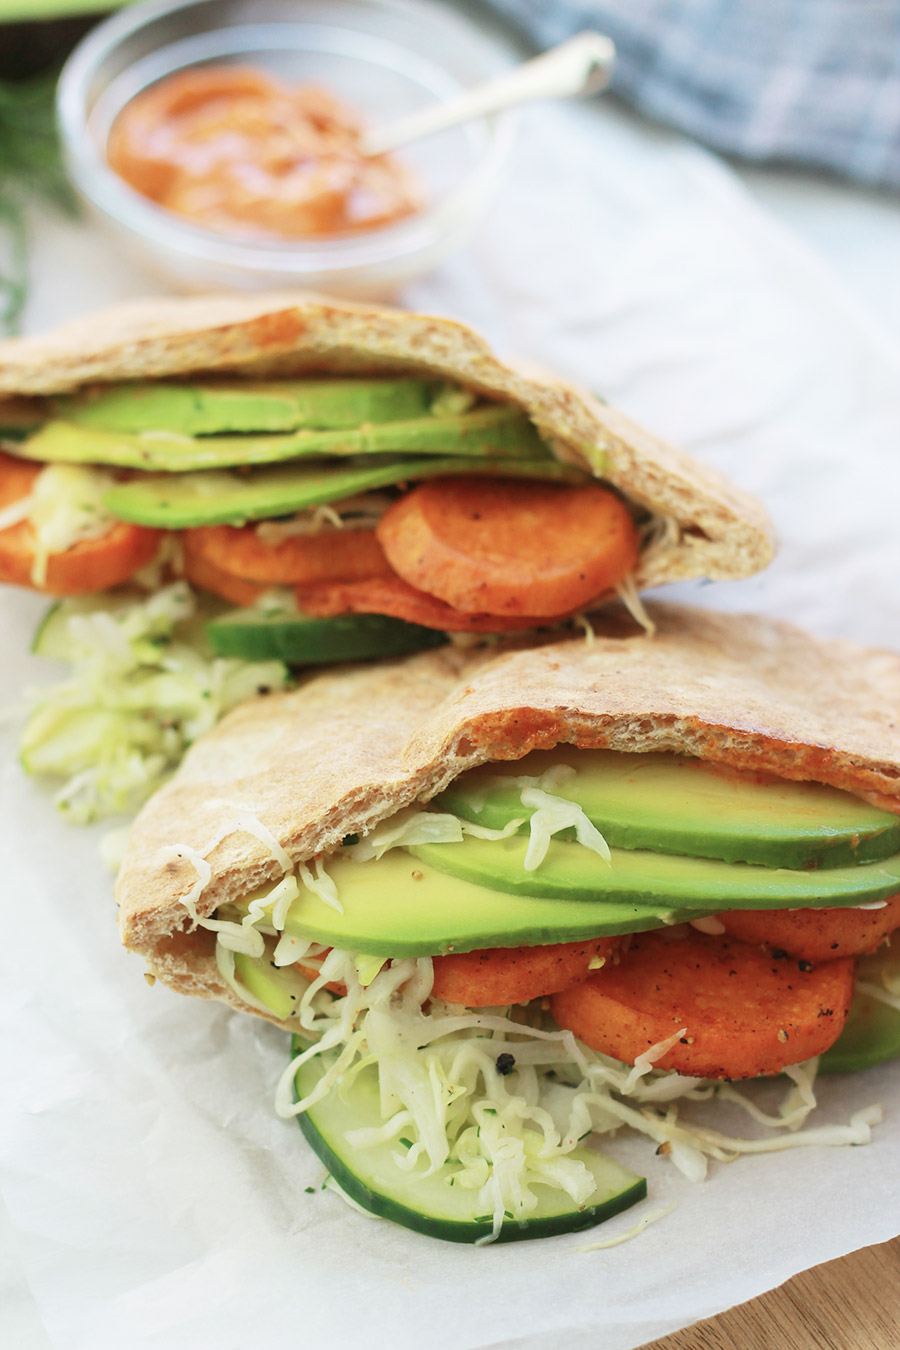 Close-up of pita pocket stuffed with spicy roasted sweet potato slices, cucumber slaw and avocado slices, with sandwich spread in background.